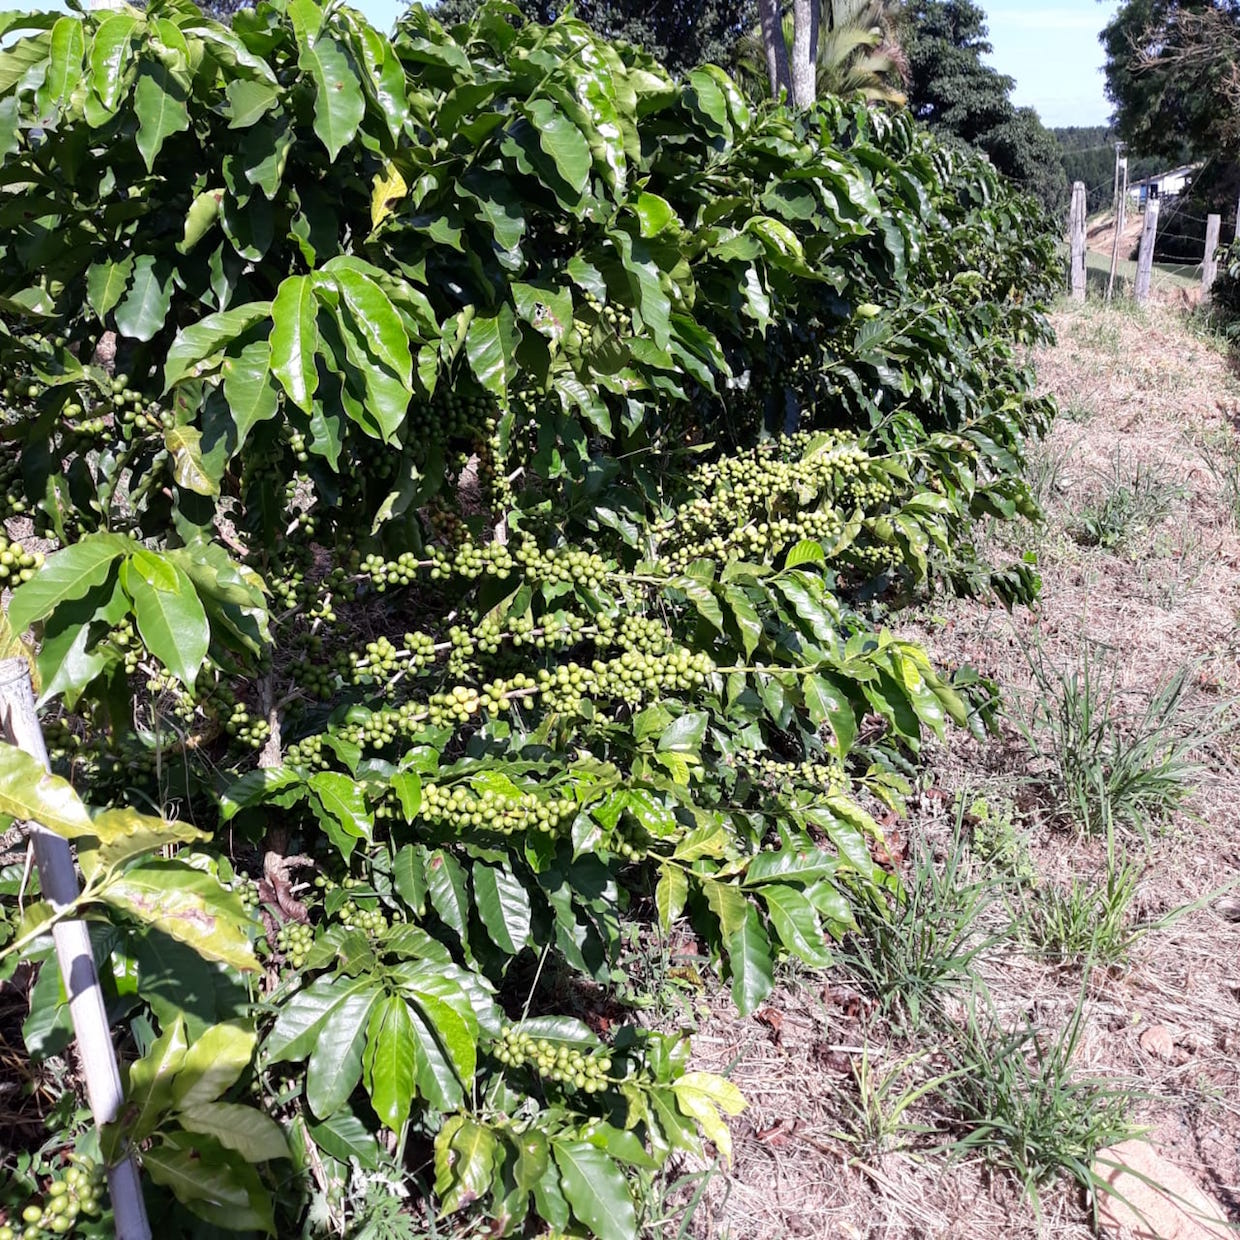 Brazil coffee plants